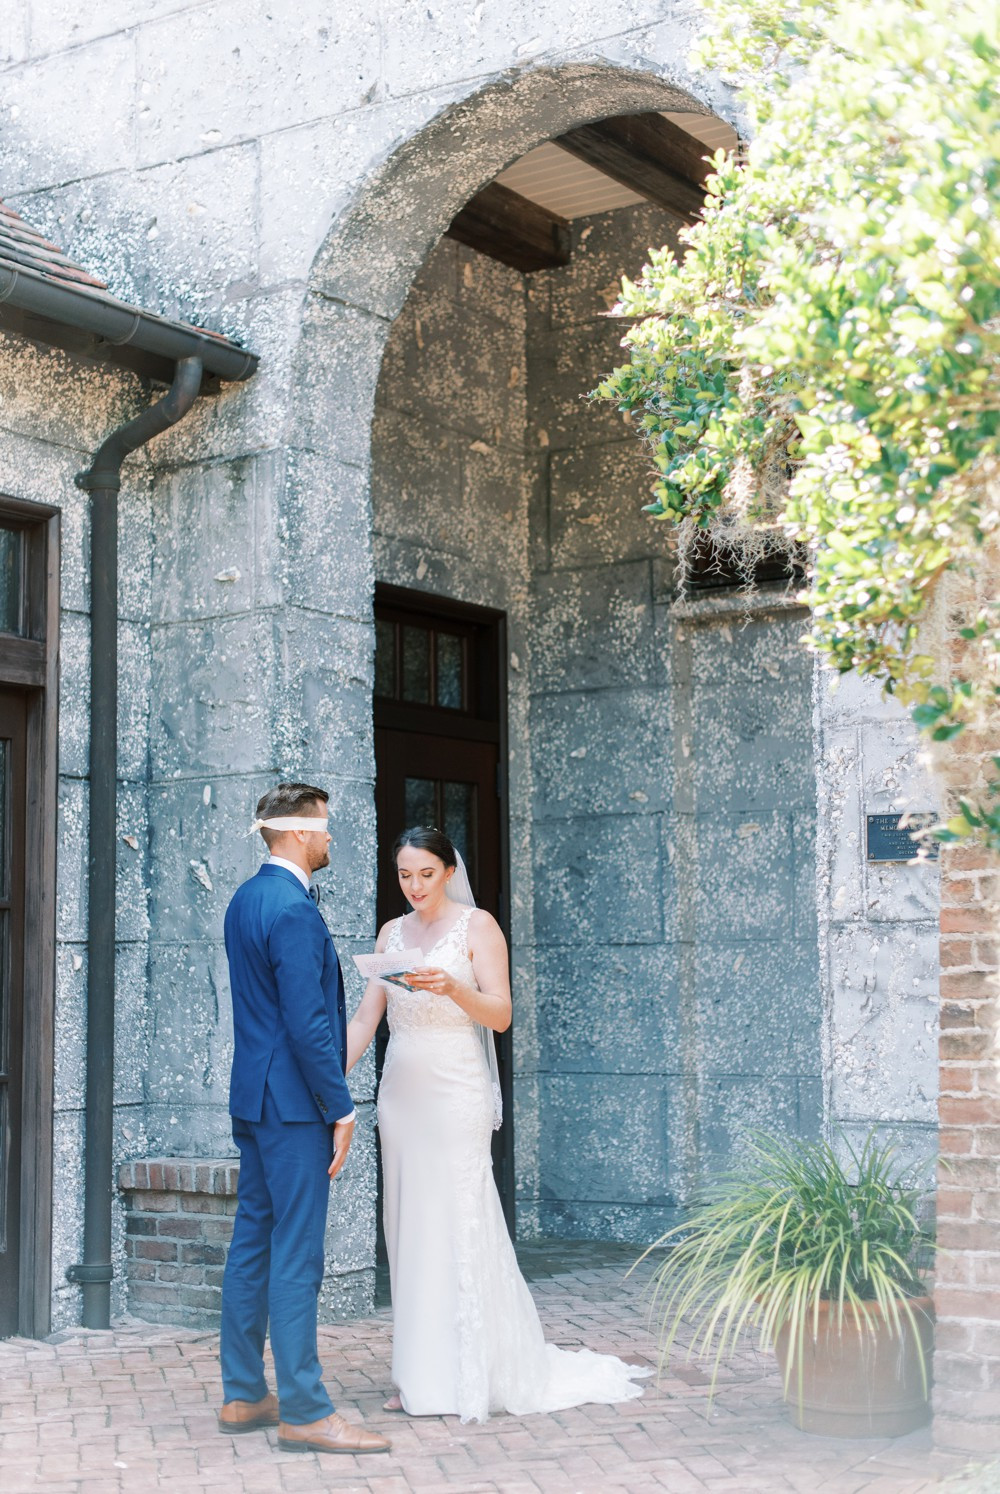 A Destination Wedding at St. Simons Island bride and groom kissing under a beautiful spanish moss tree